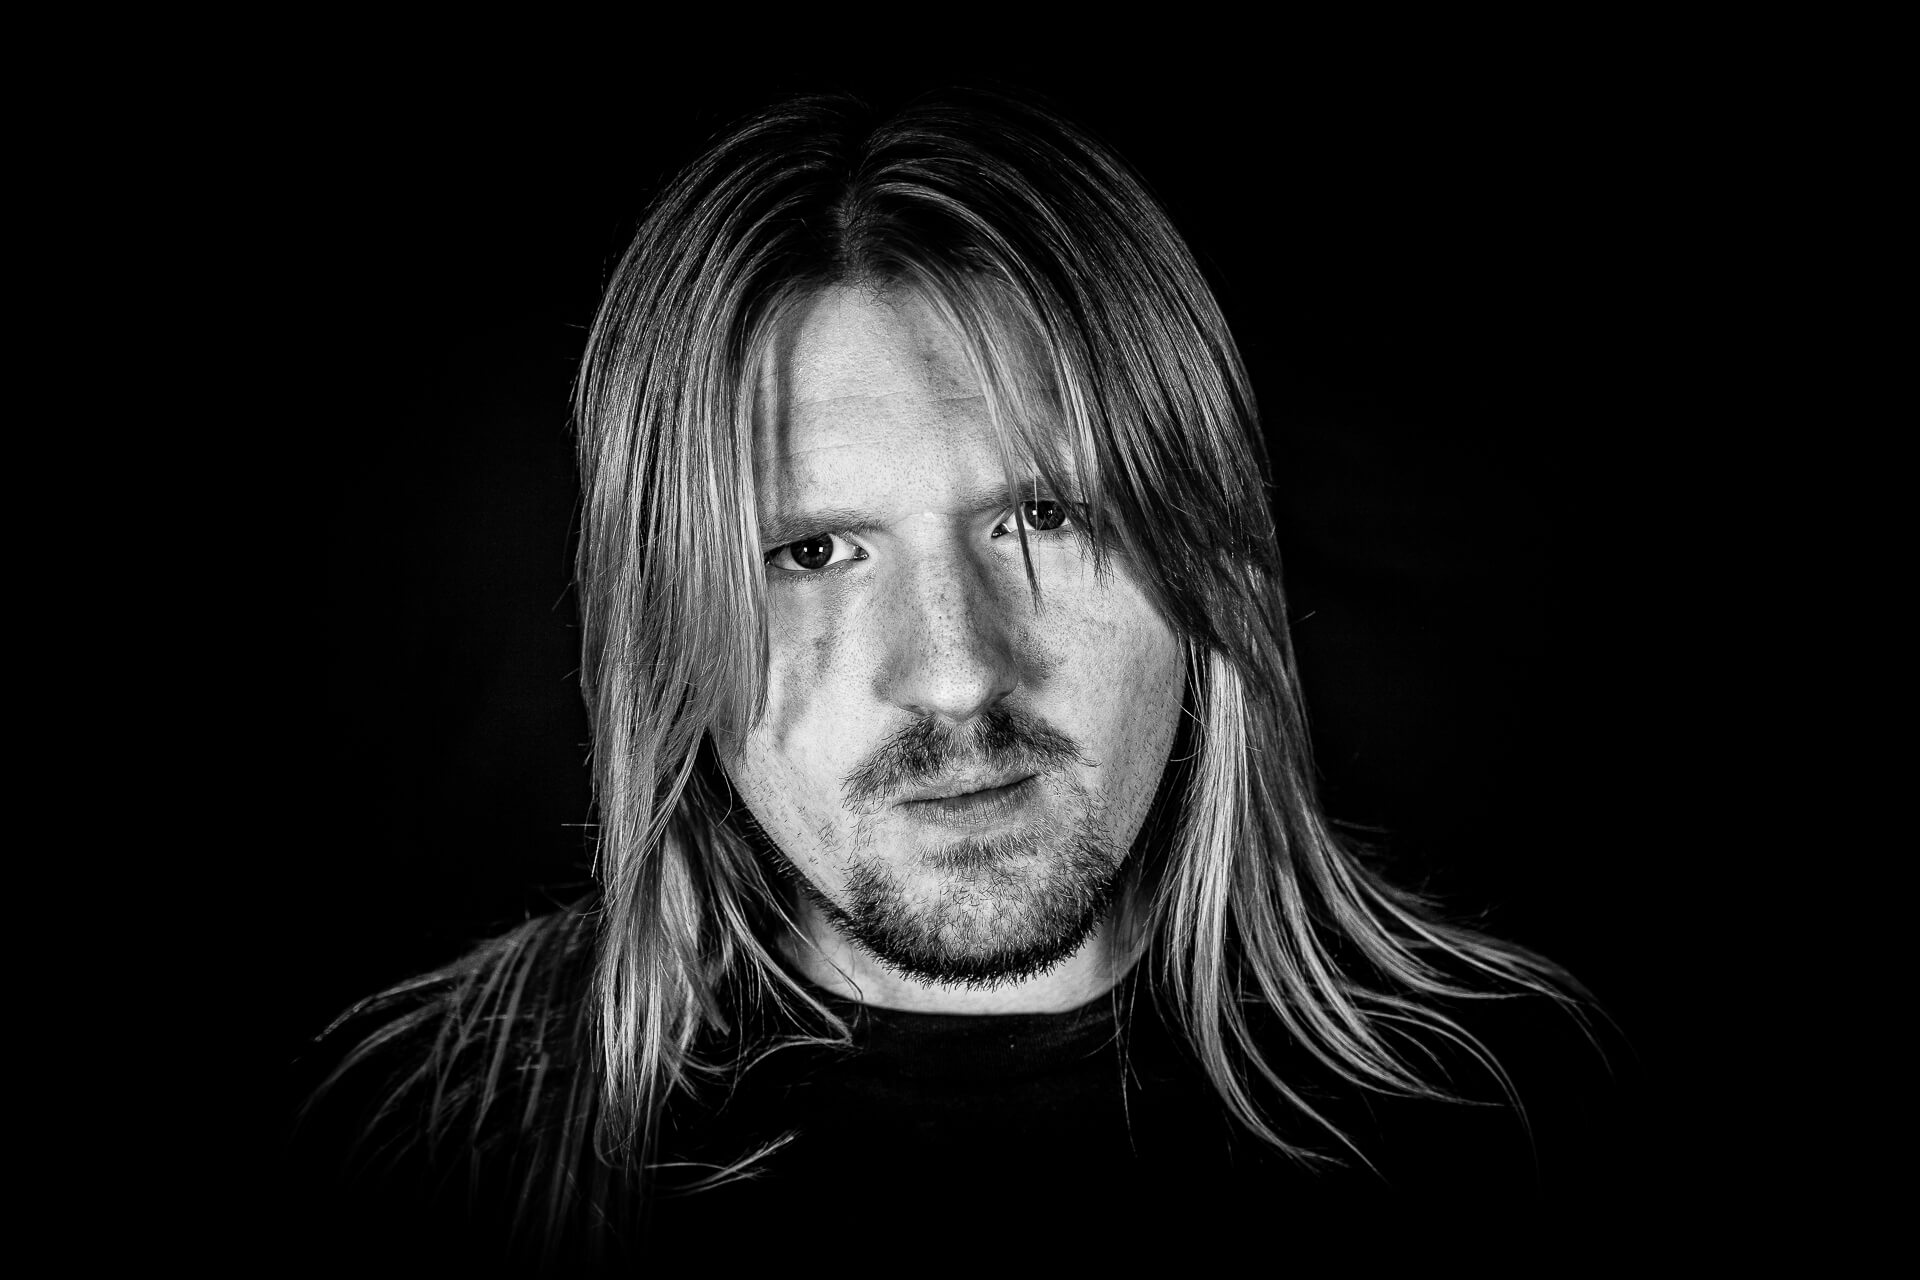 A moody Black & White headshot of Miles Meakin. Miles plays guitar with the British rock band Midnite City.